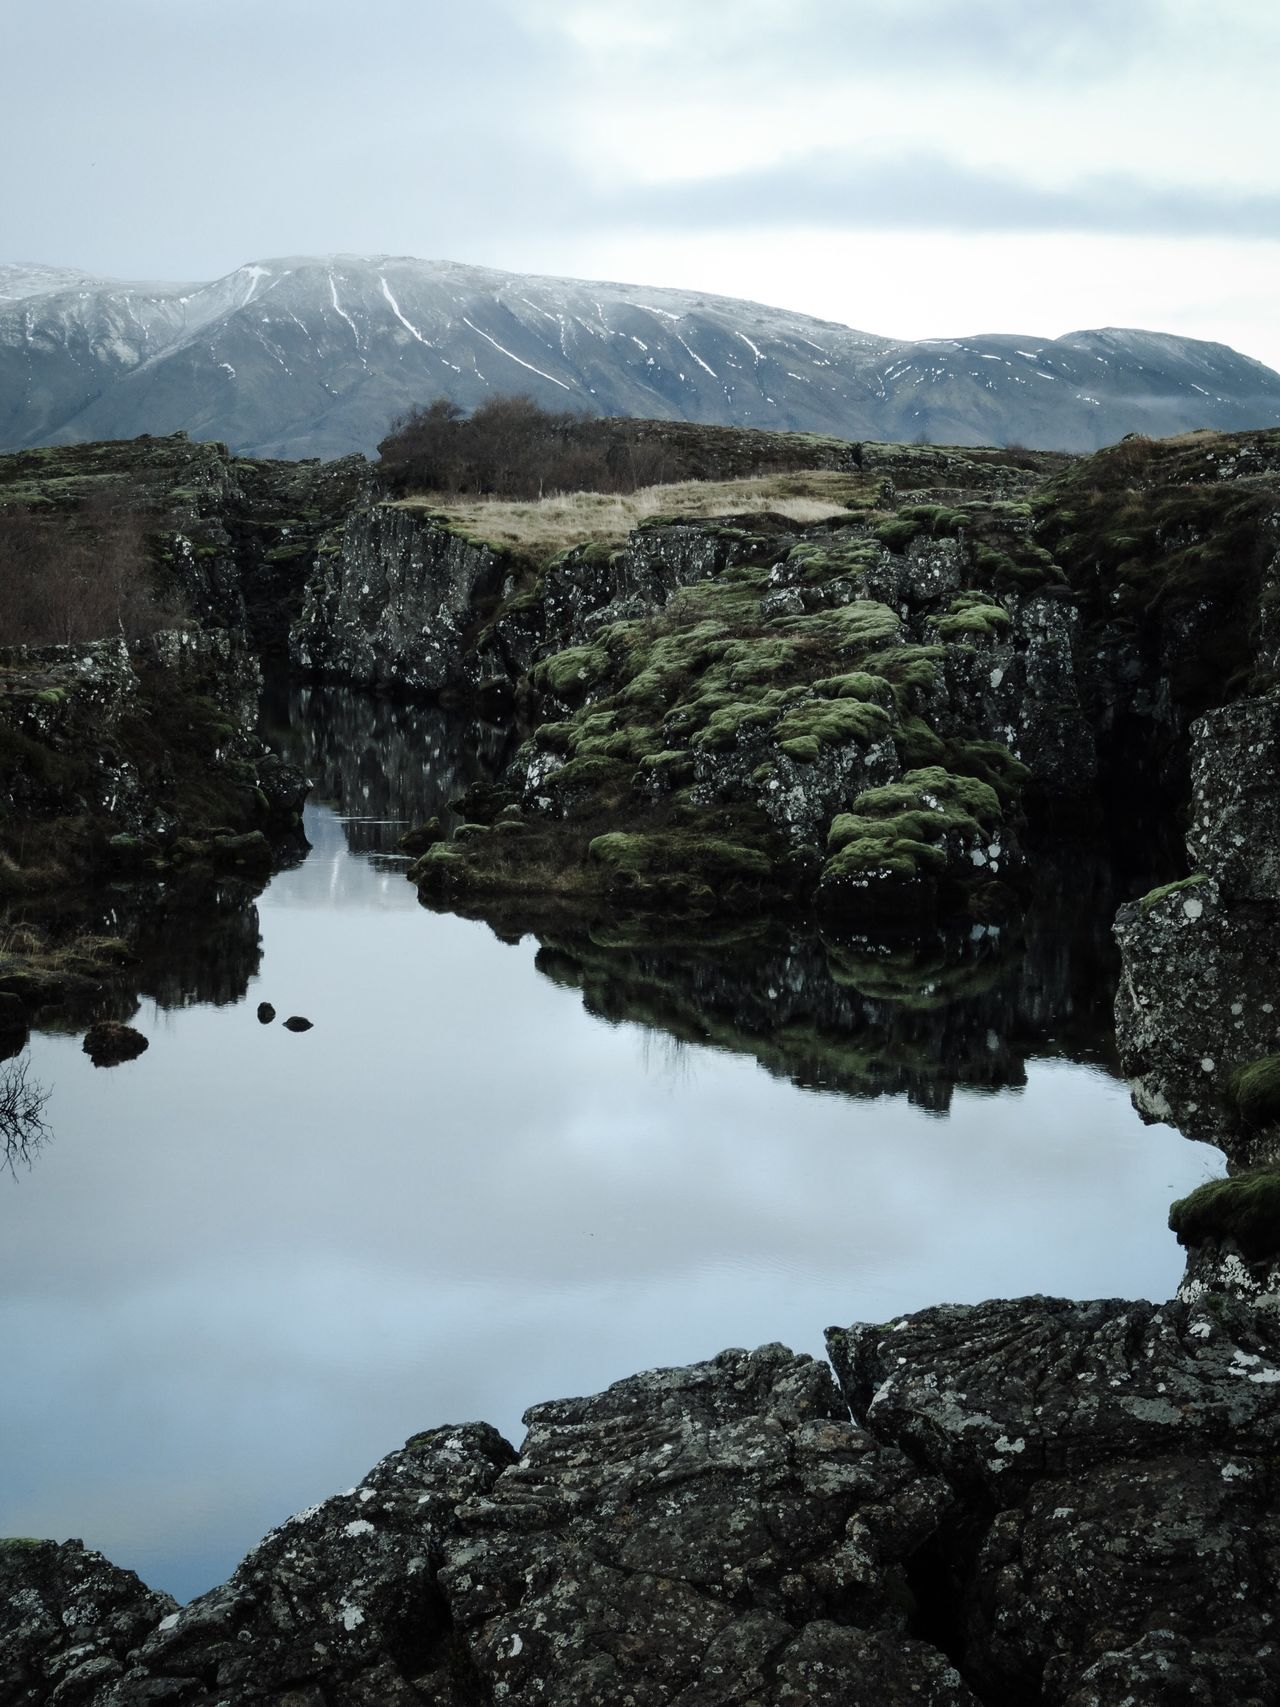 Mountain Nature Water Sky Beauty In Nature No People Tranquility Outdoors Day Iceland Thingvellir Thingvellir National Park Water Reflections Stones Stones & Water